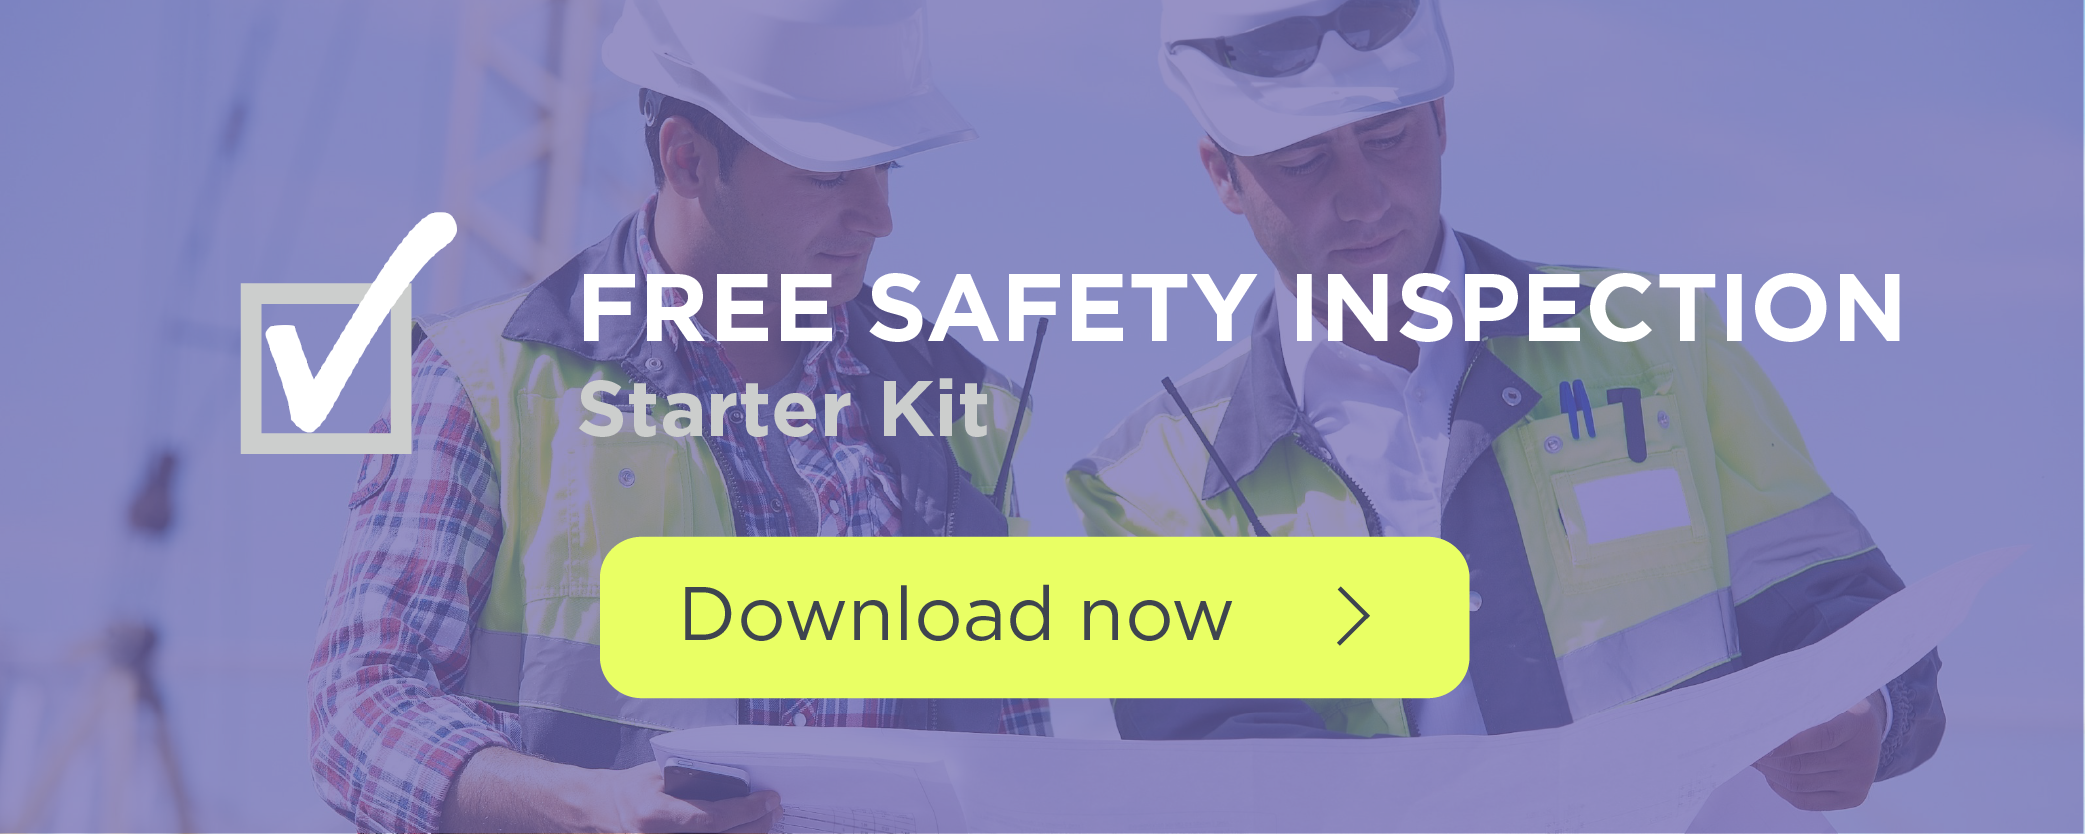 Safety Inspection Starter Kit